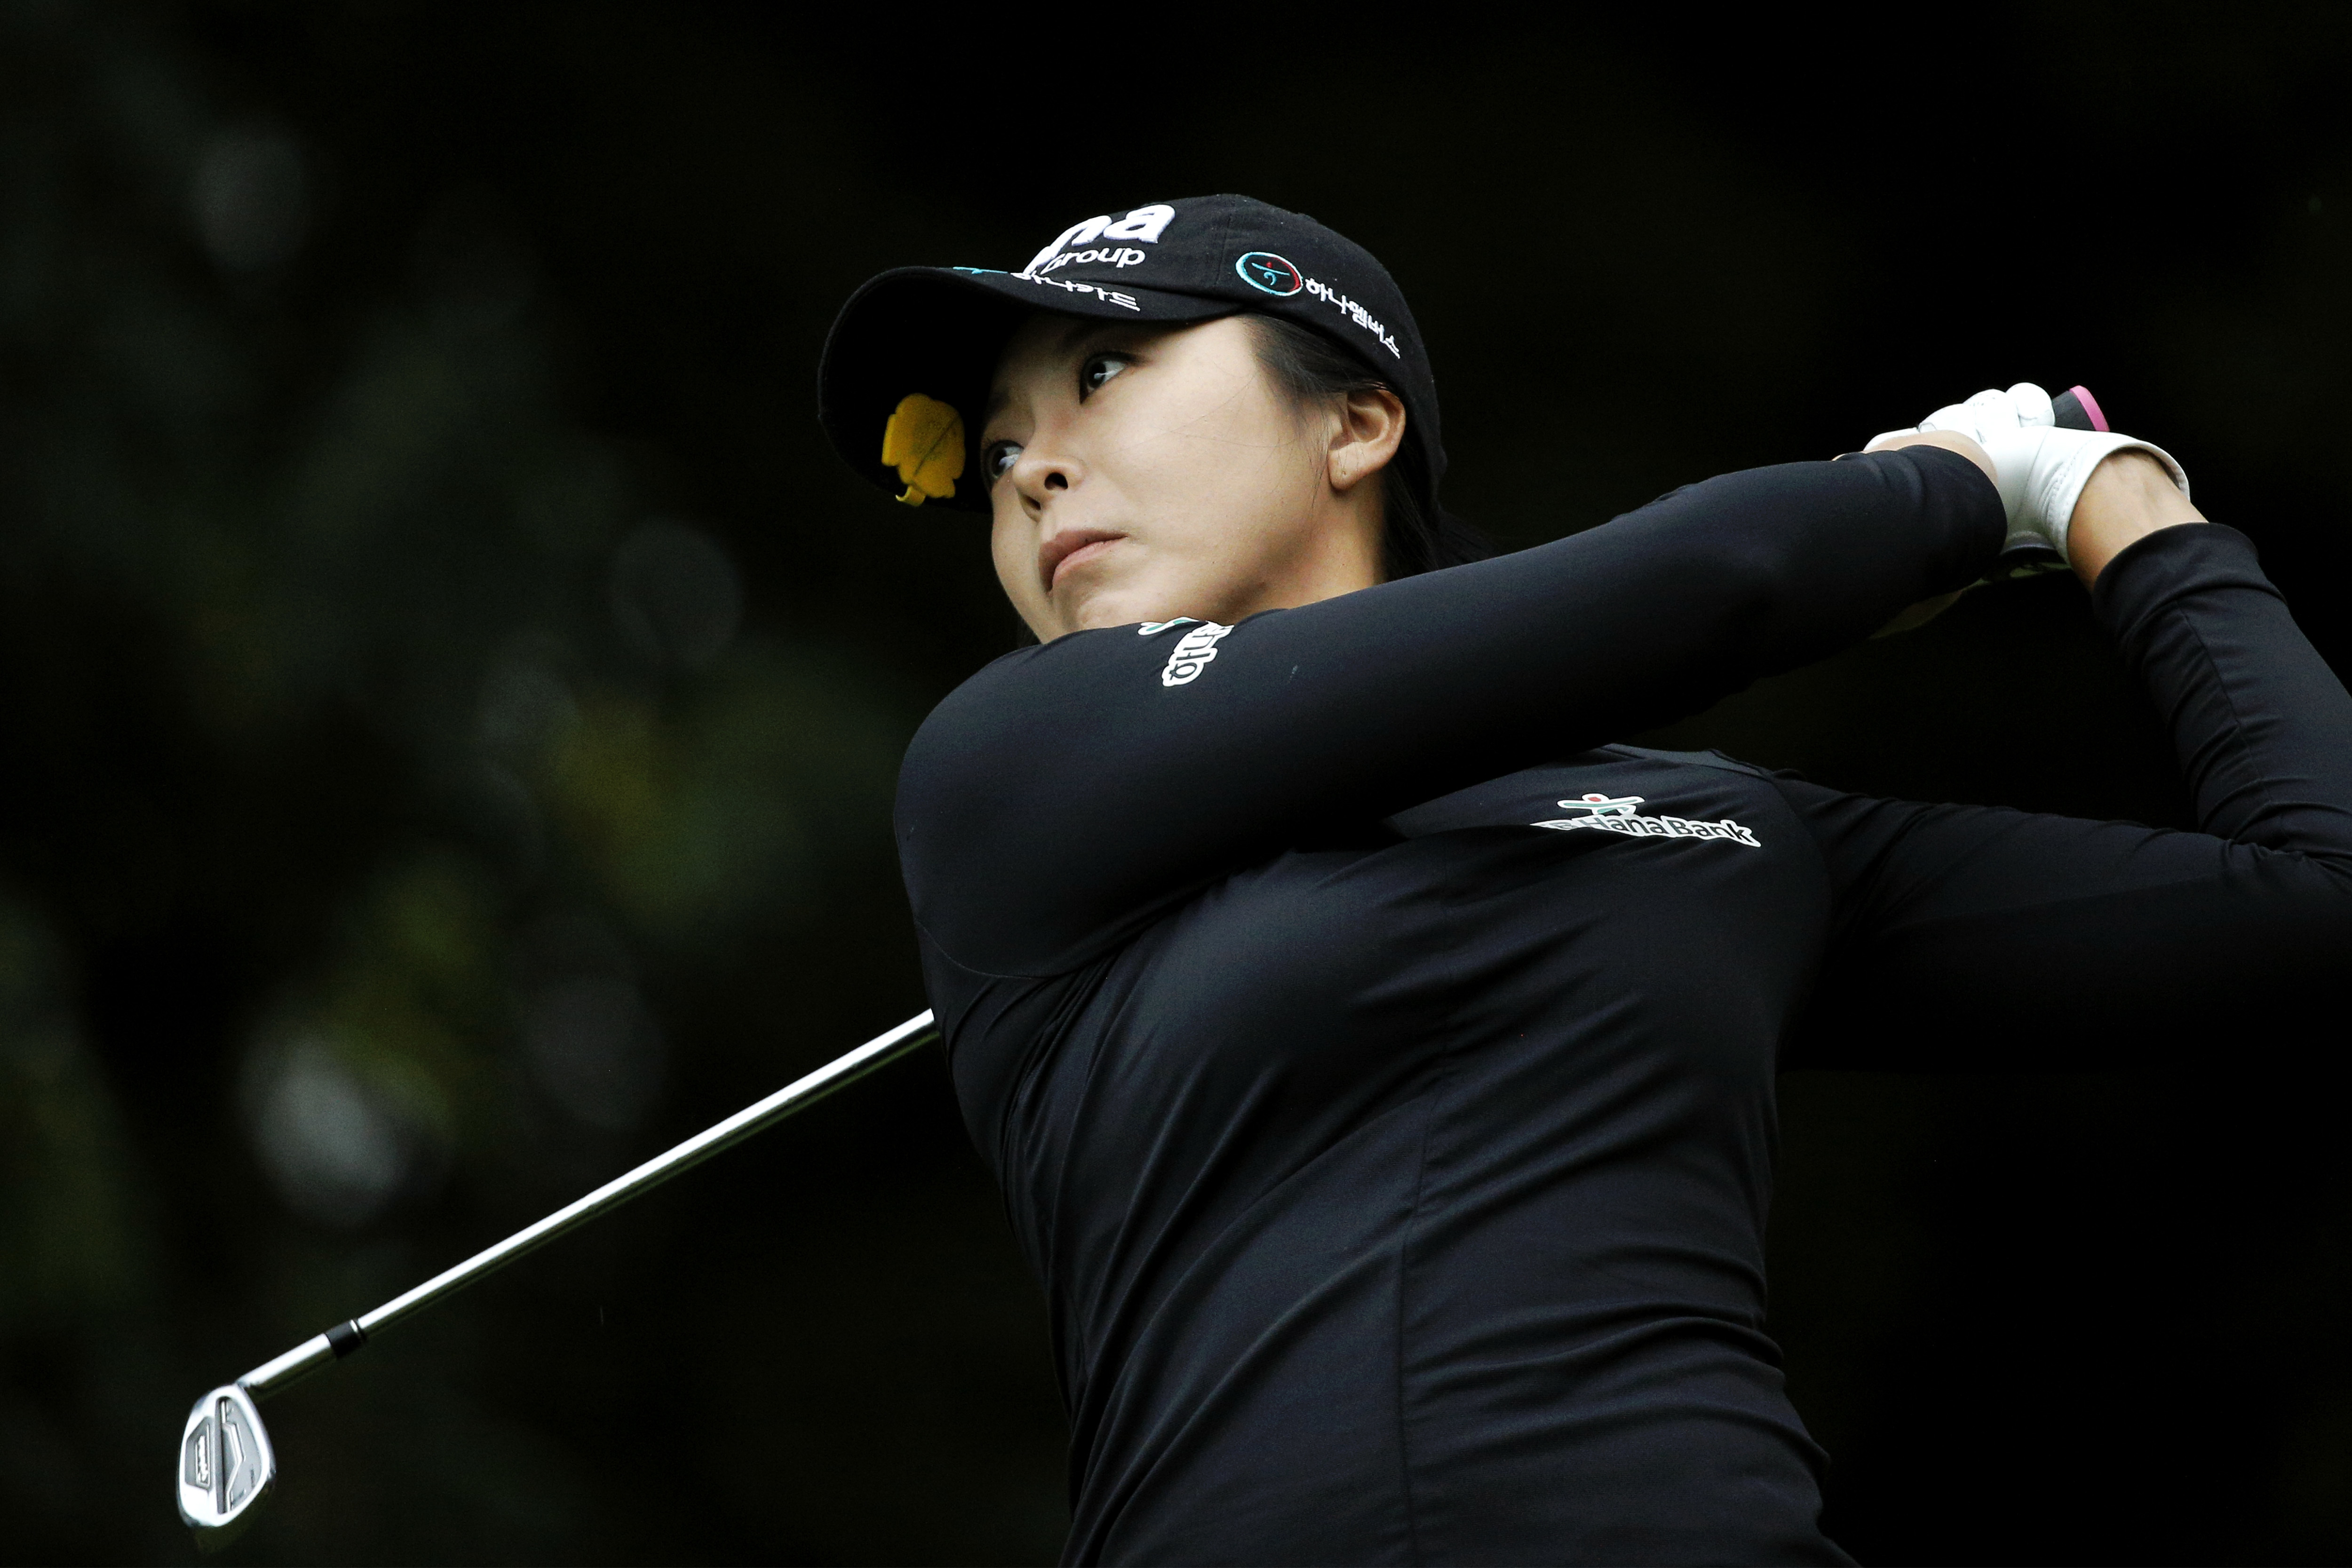 Mi Jung Hur, of South Korea, follows her ball after playing on the 2nd hole during the first round of the Evian Championship women's golf tournament in Evian, eastern France, Thursday, Sept. 15, 2016. (AP Photo/Laurent Cipriani)